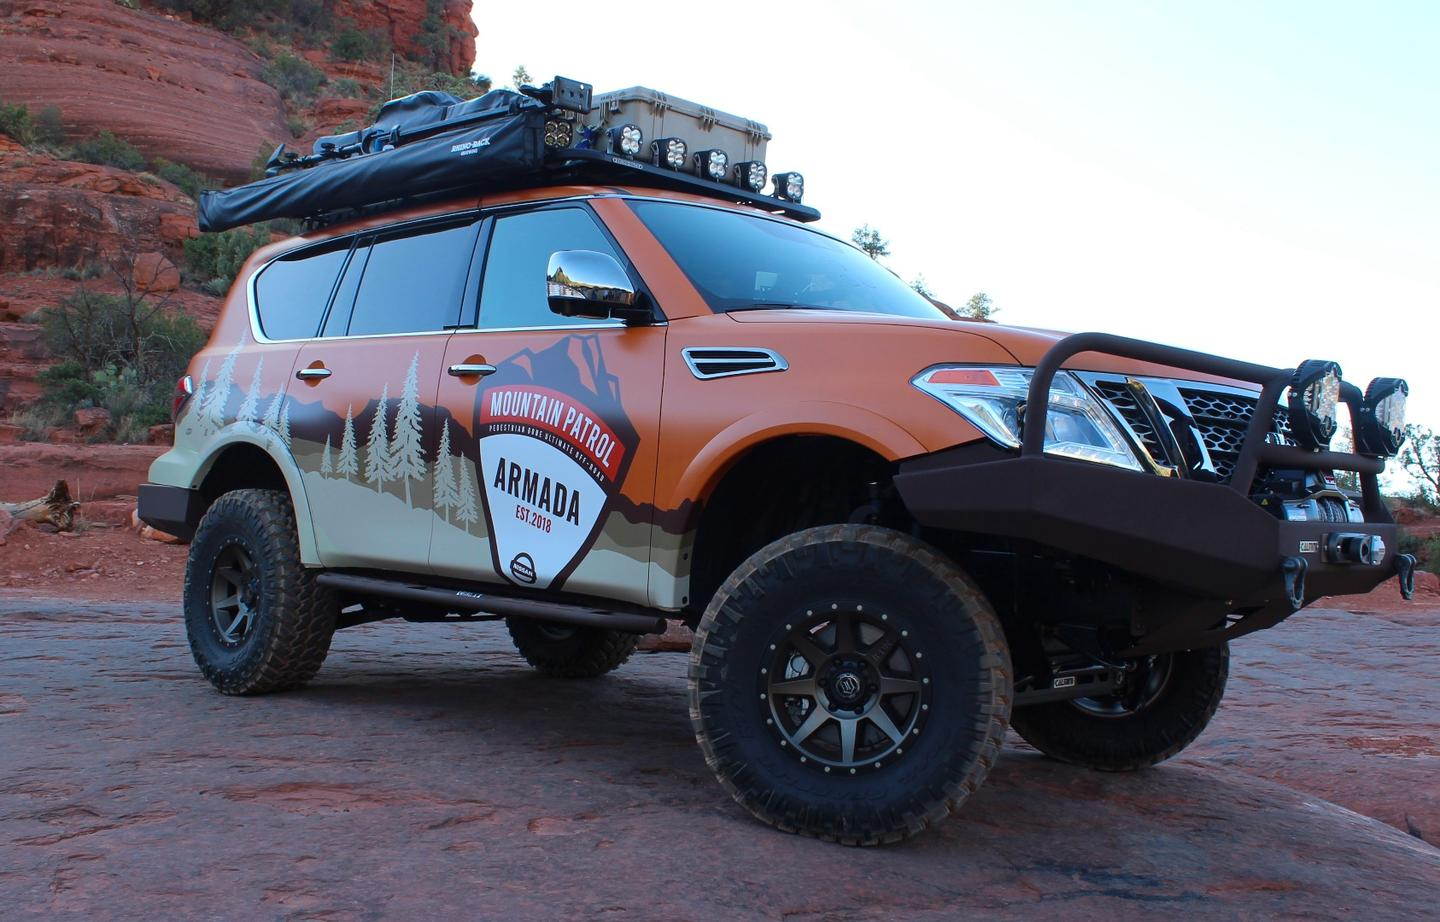 Nissan goes full-on off-road expedition with the Armada Mountain Patrol